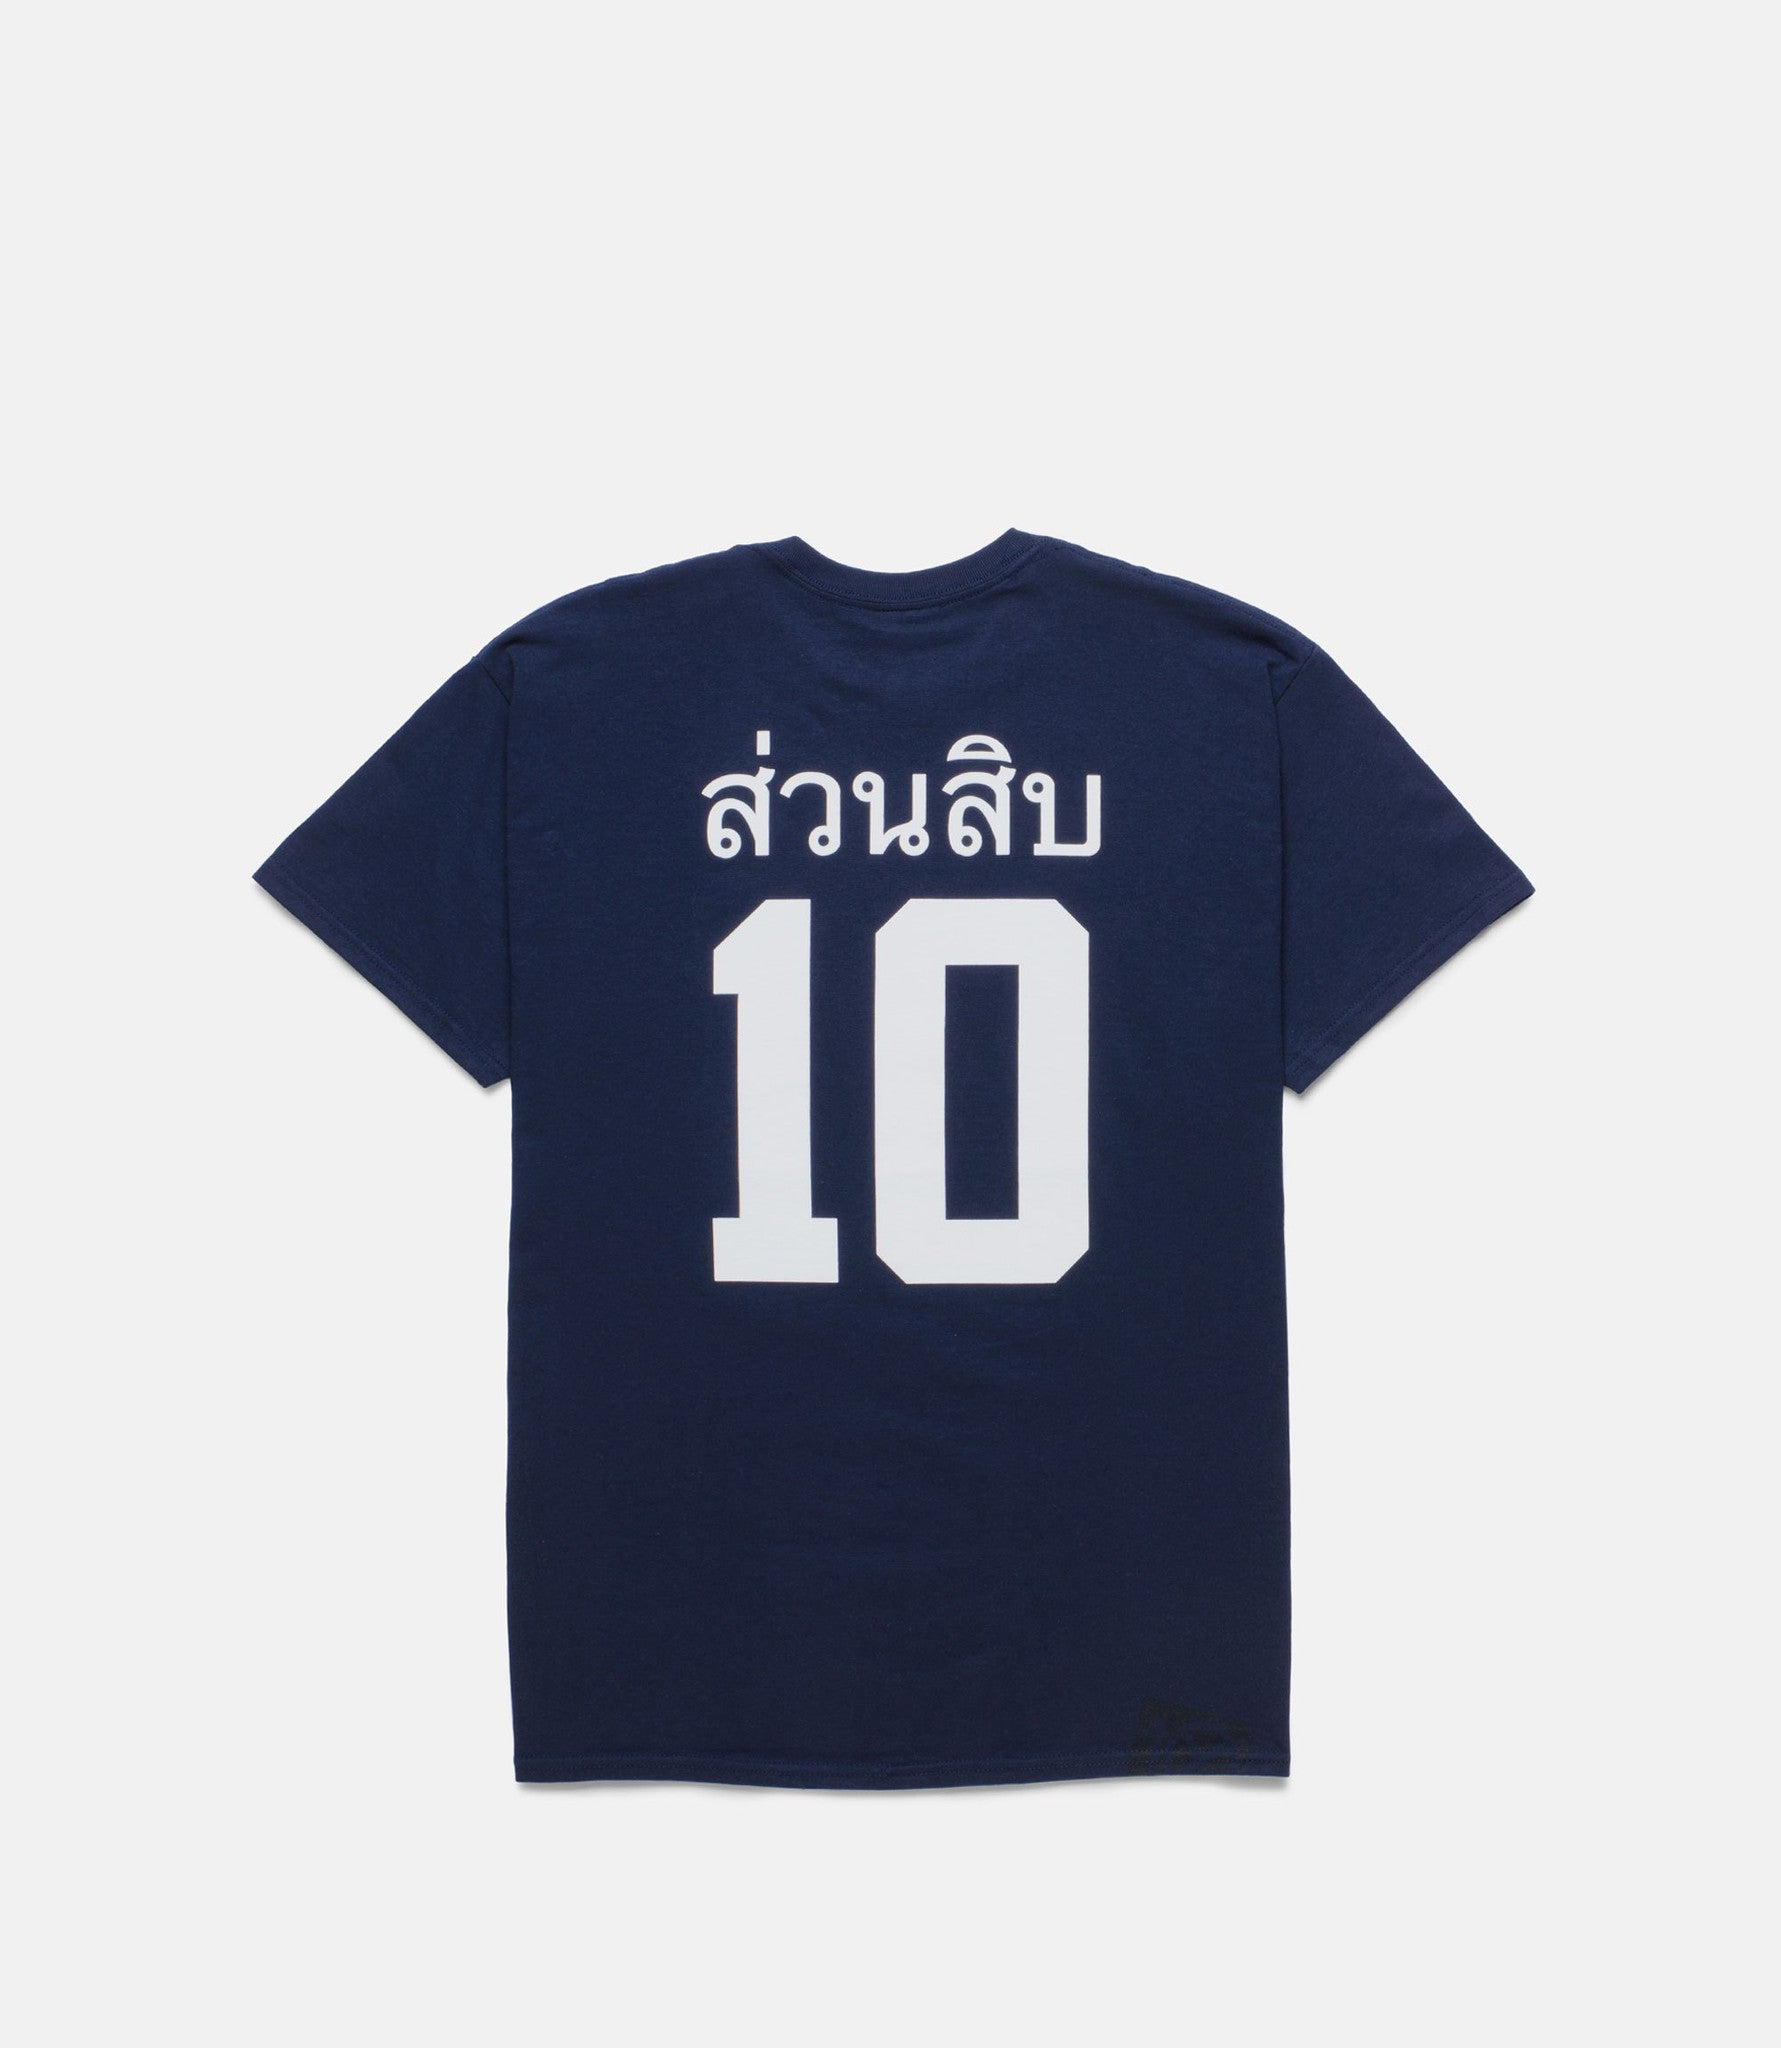 10Deep - Namsaknoi Men's Tee, Navy - The Giant Peach - 1